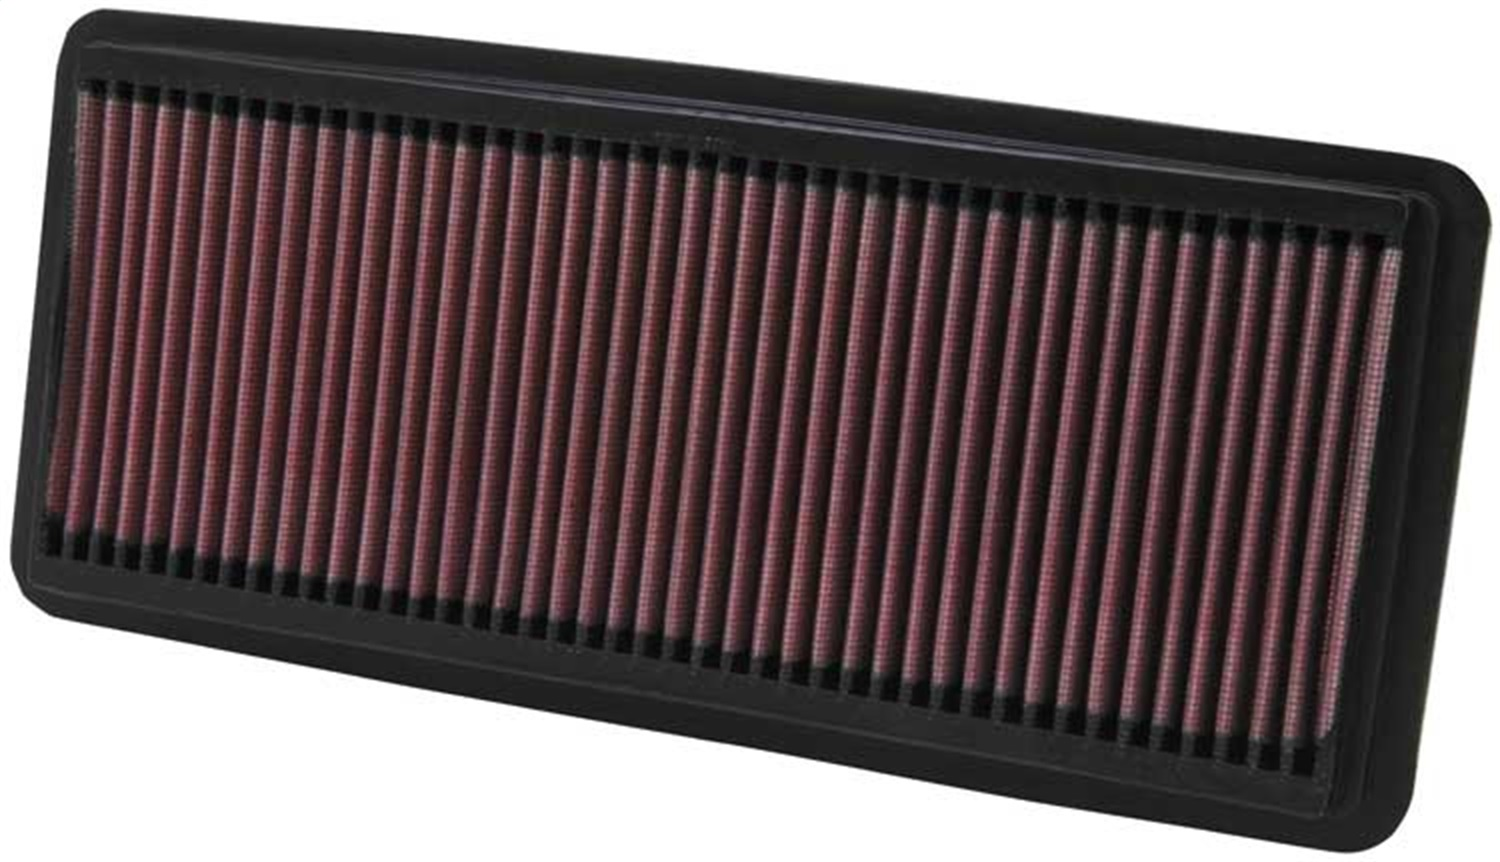 K&N Filters 33-2277 Air Filter Fits 03-07 Accord 33-2277